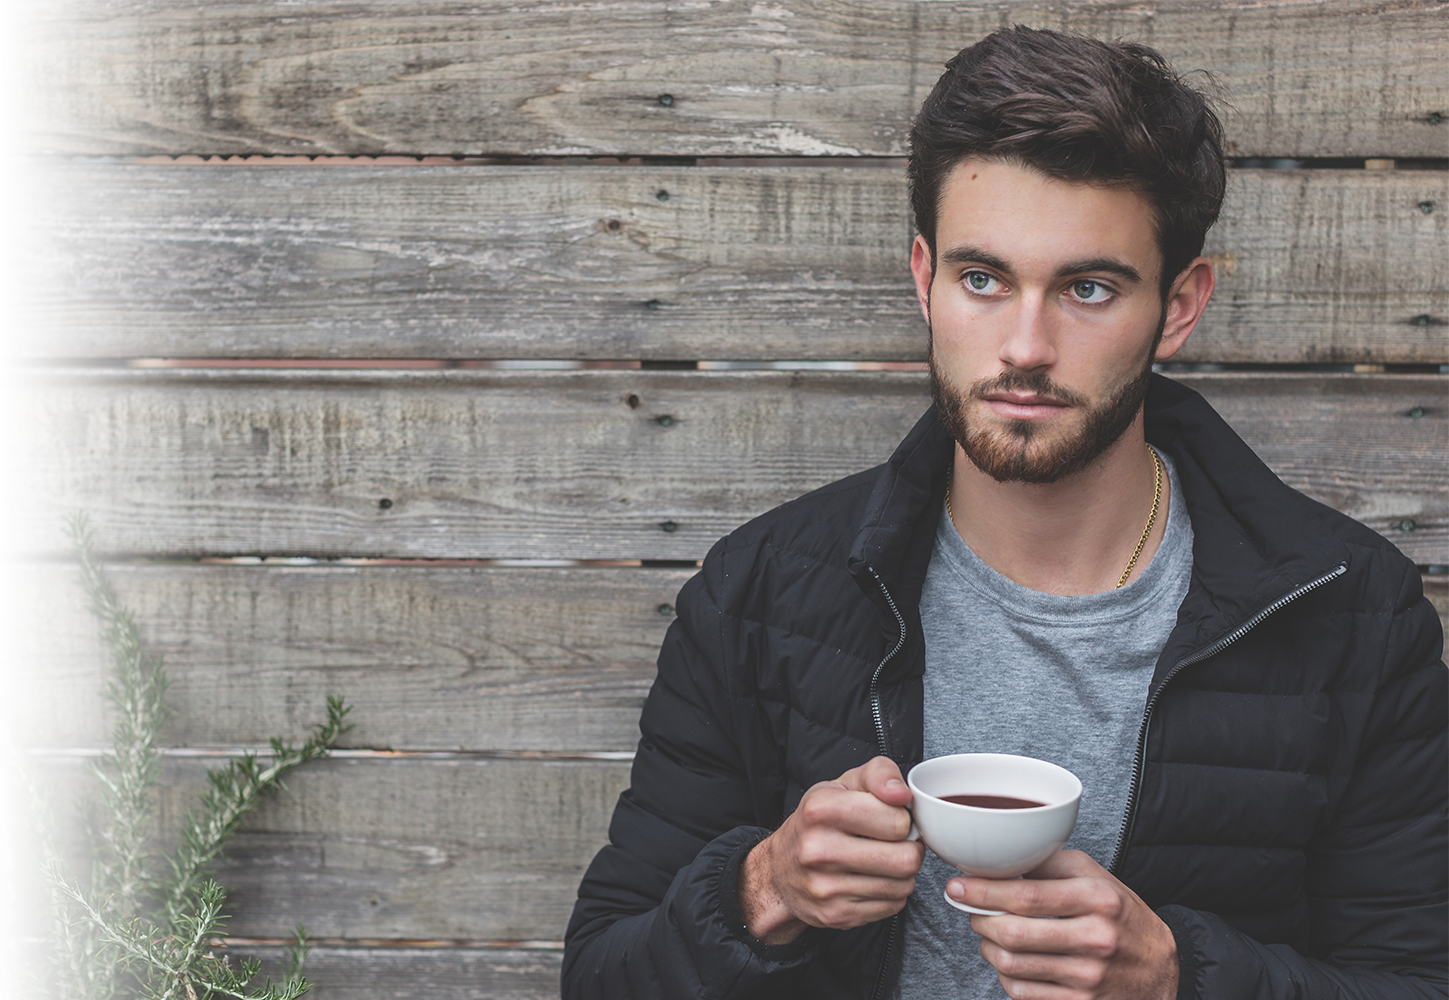 What are the signs of thrush in men?